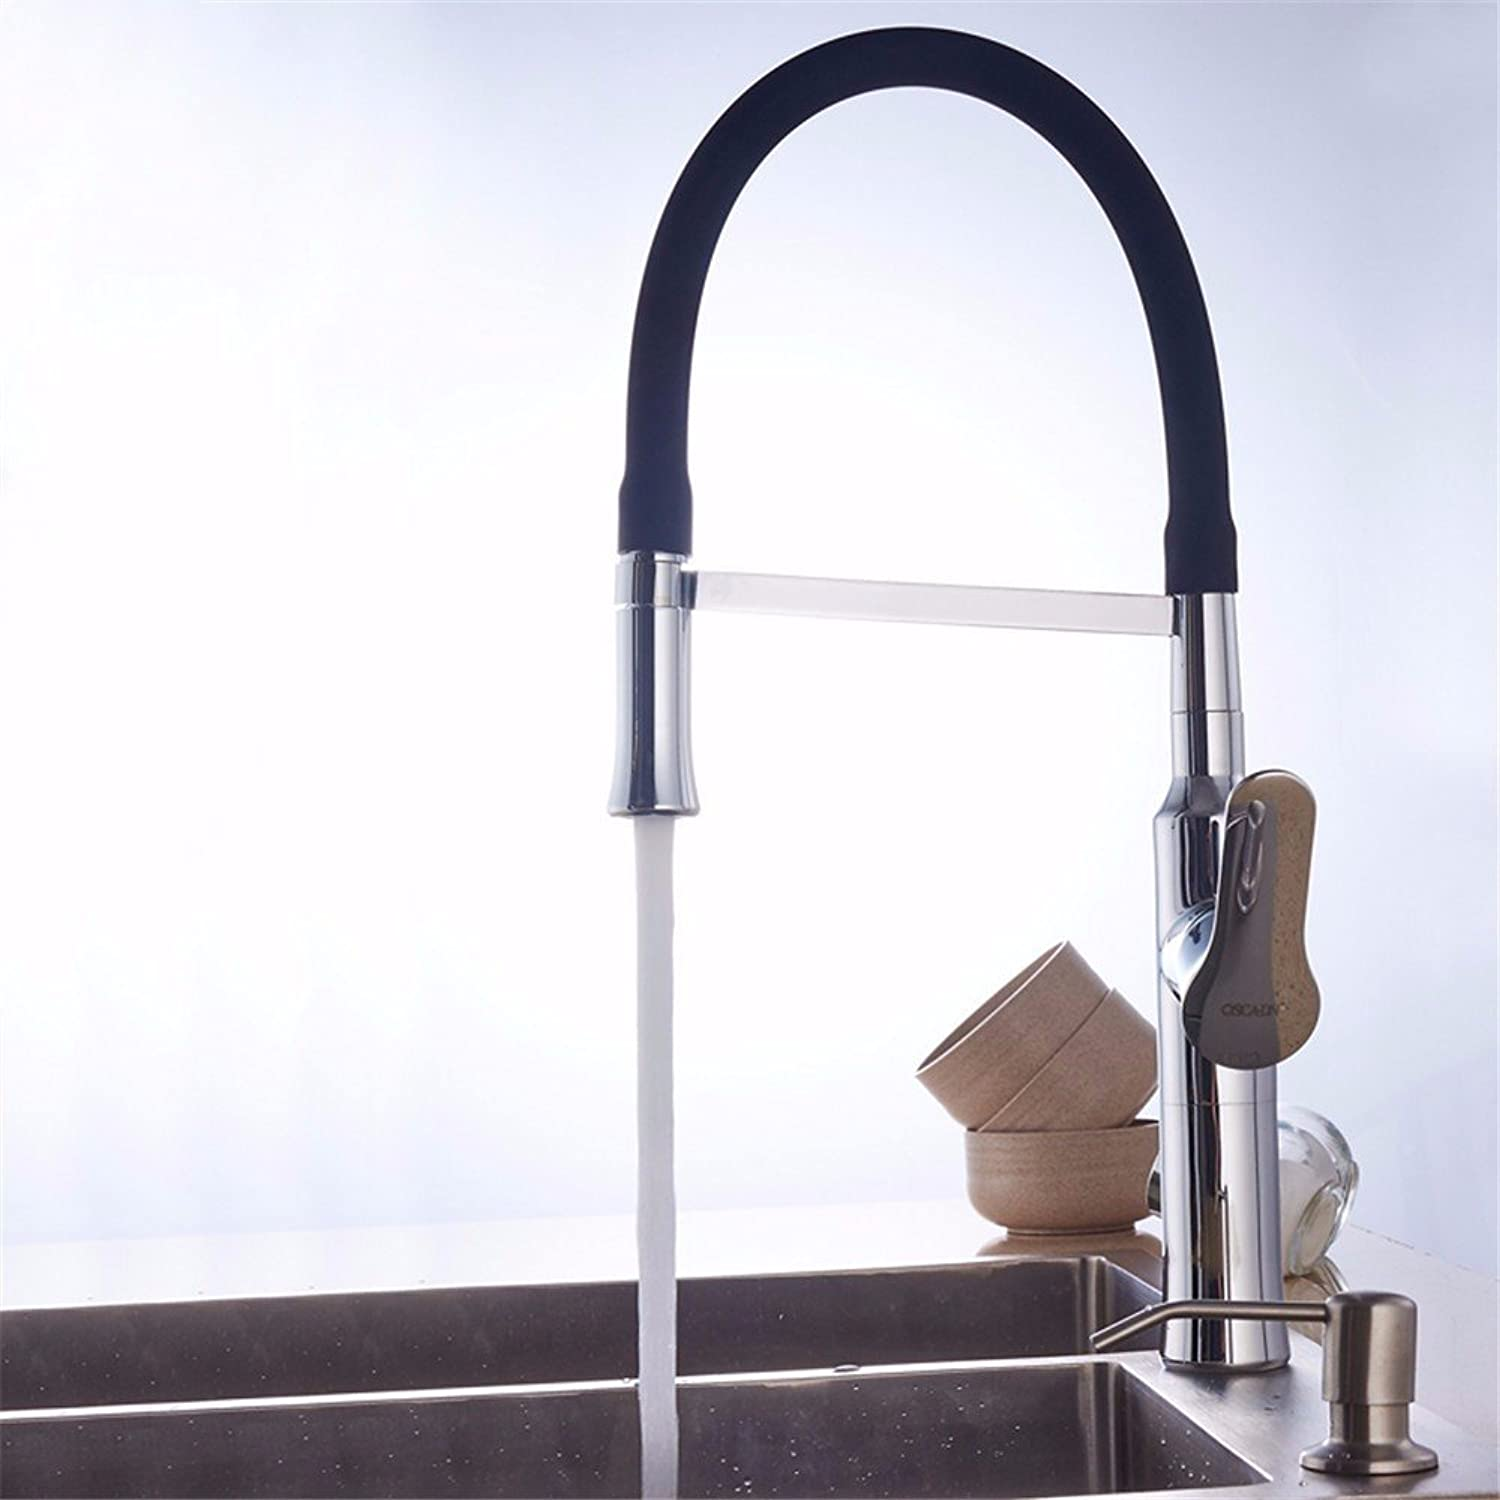 Bijjaladeva Antique Bathroom Sink Vessel Faucet Basin Mixer Tap All of the brass kitchen faucet swivel pull-down hot and cold tap water to wash bowl of pool water faucet